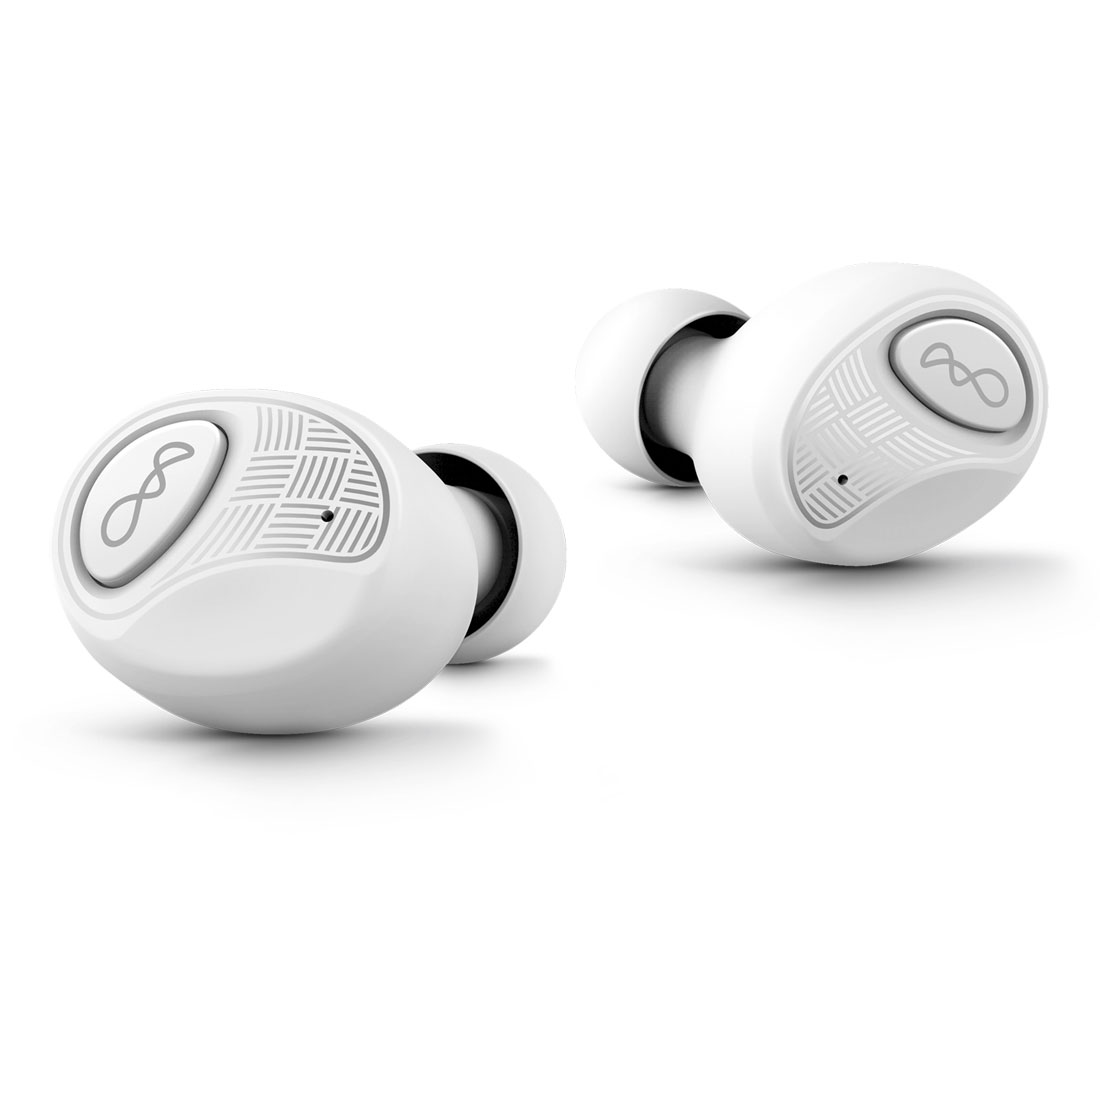 Blueant Pump Air 2 Wireless Sports Ear Buds - White